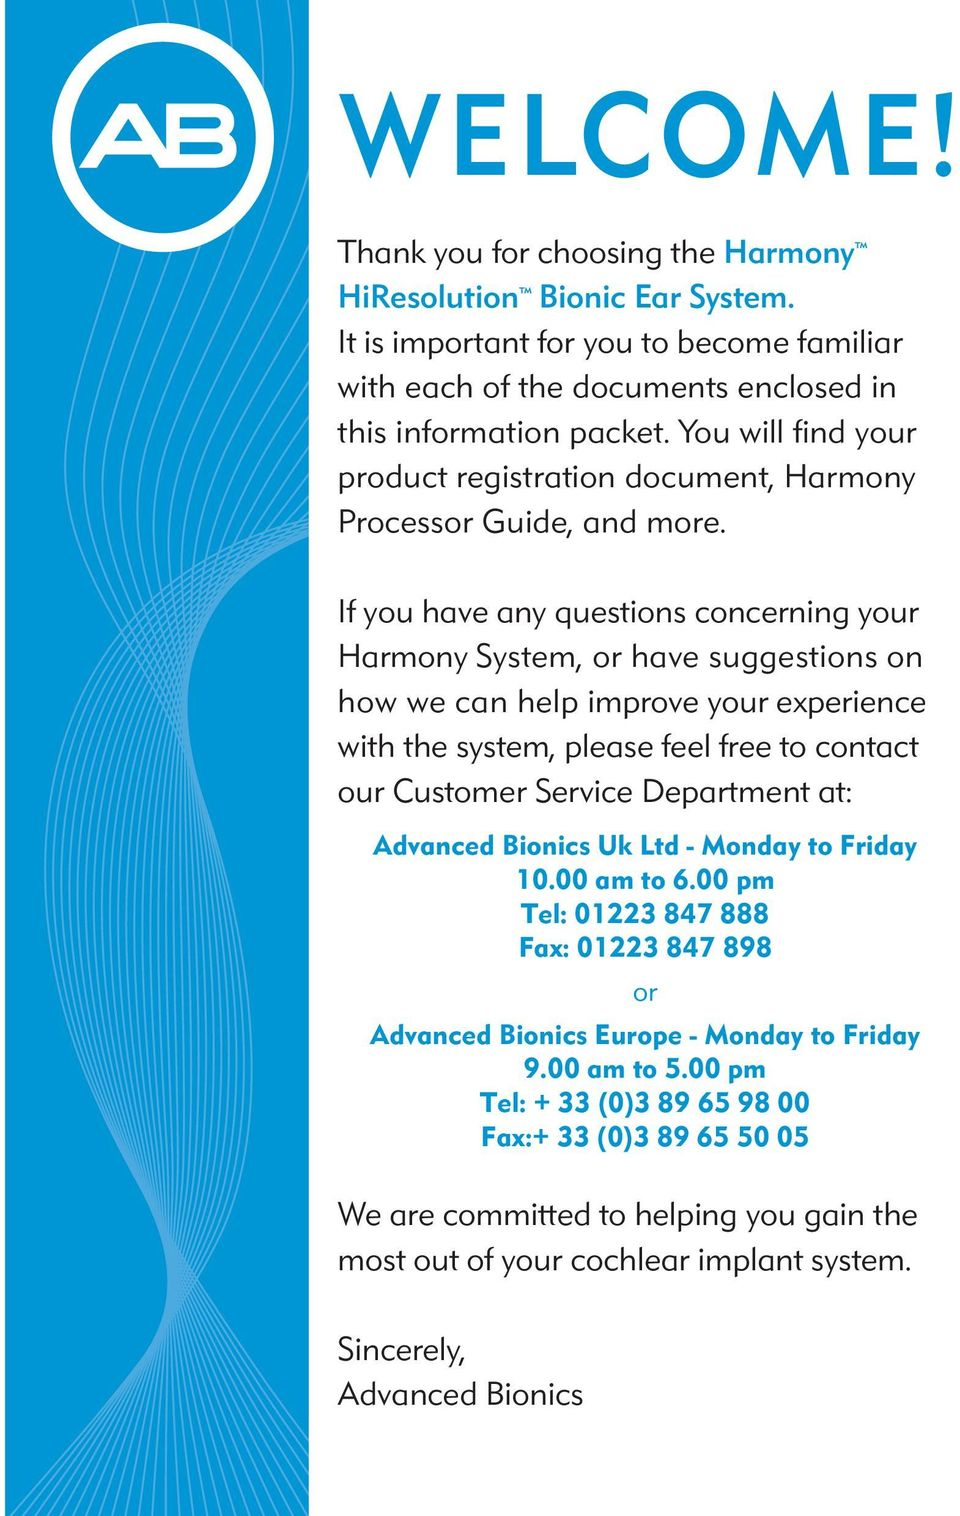 If you have any questions concerning your Harmony System, or have suggestions on how we can help improve your experience with the system, please feel free to contact our Customer Service Department